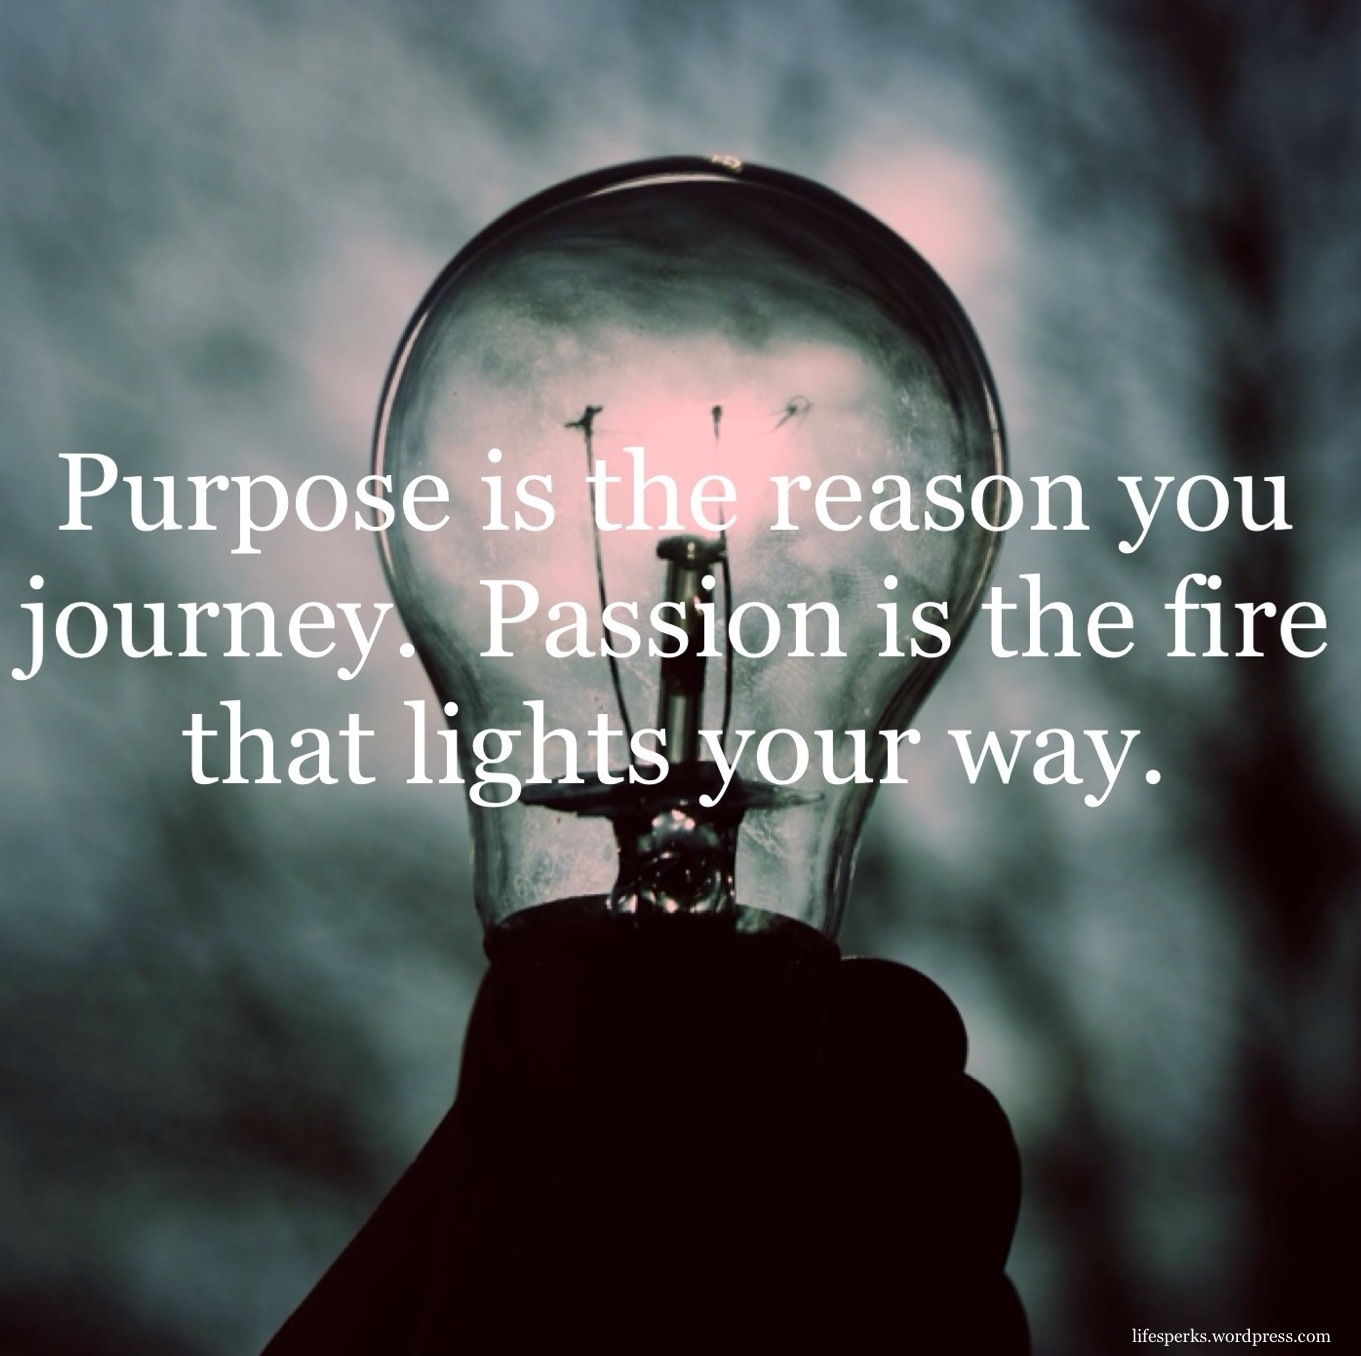 Quotes Journey 63 Best Passion Quotes And Sayings Of All Time